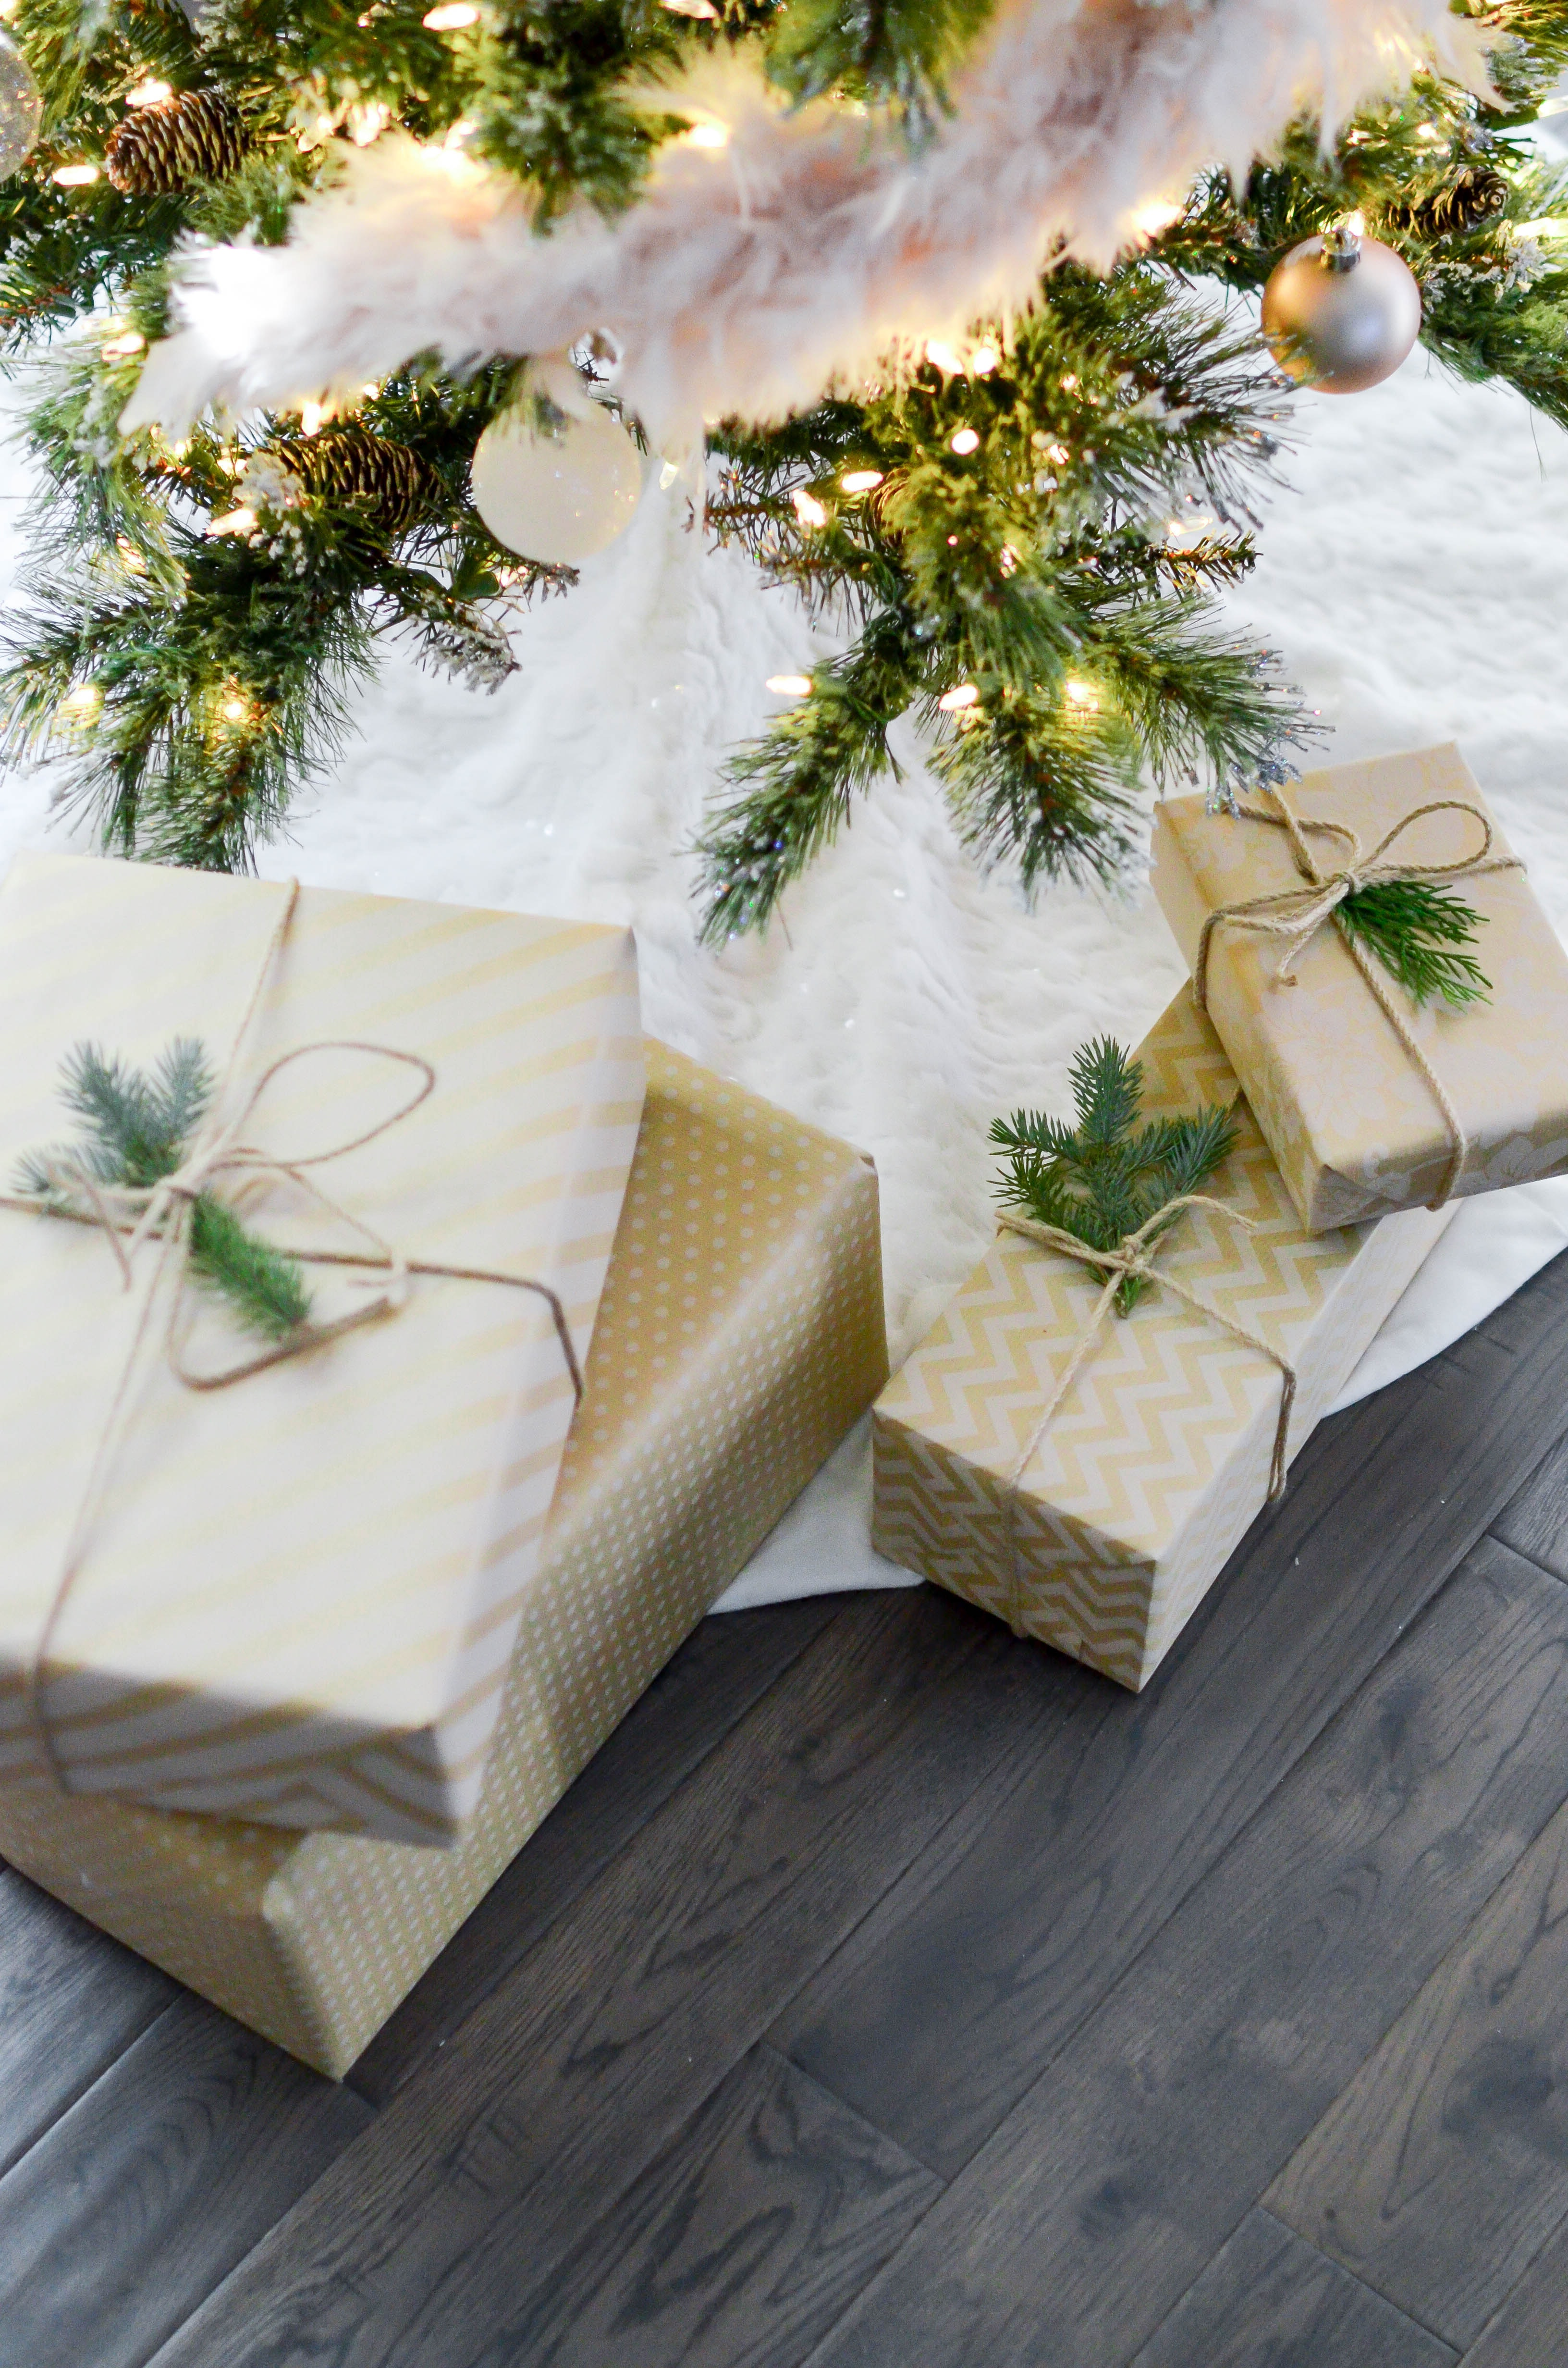 sapin-noel-traditions-concours-cadeaux-